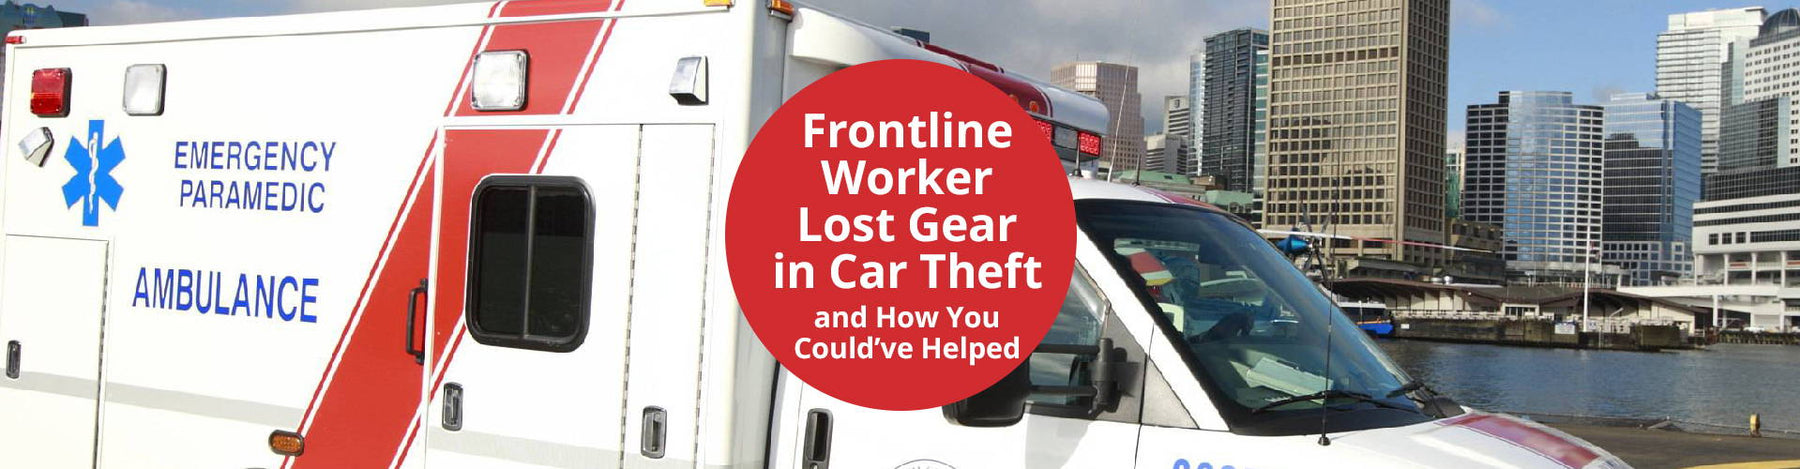 Frontline Worker Lost Gear in Car Theft and How You Could've Helped